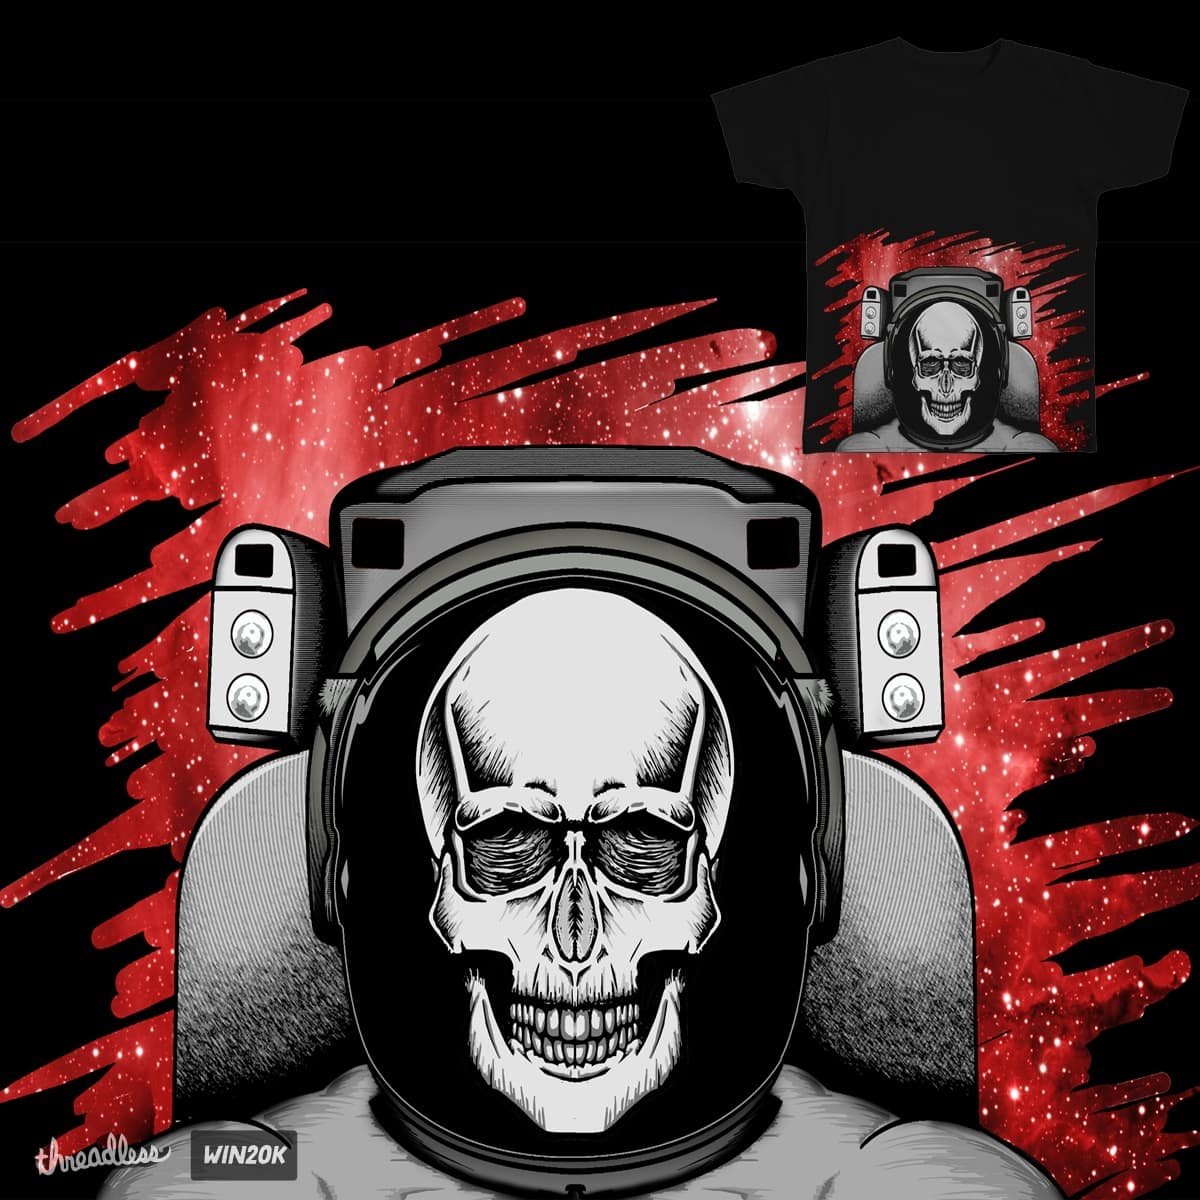 Space odyssey by Kre8ive1 on Threadless